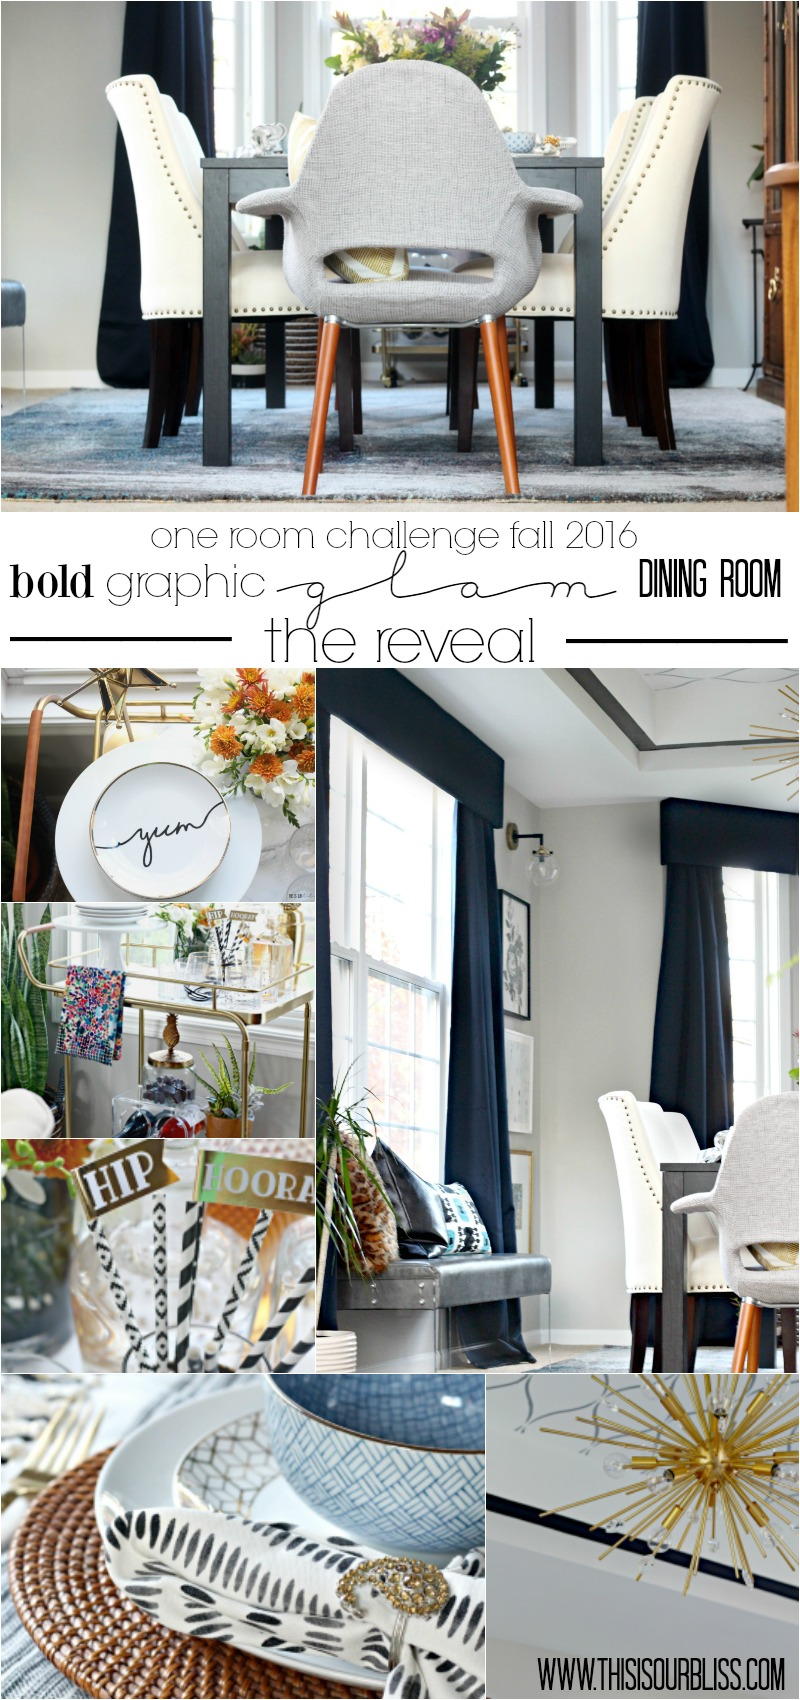 Bold Graphic Glam Dining Room Reveal | Fall 2016 One Room Challenge | Reveal + full source list! | This is our Bliss | www.thisisourbliss.com